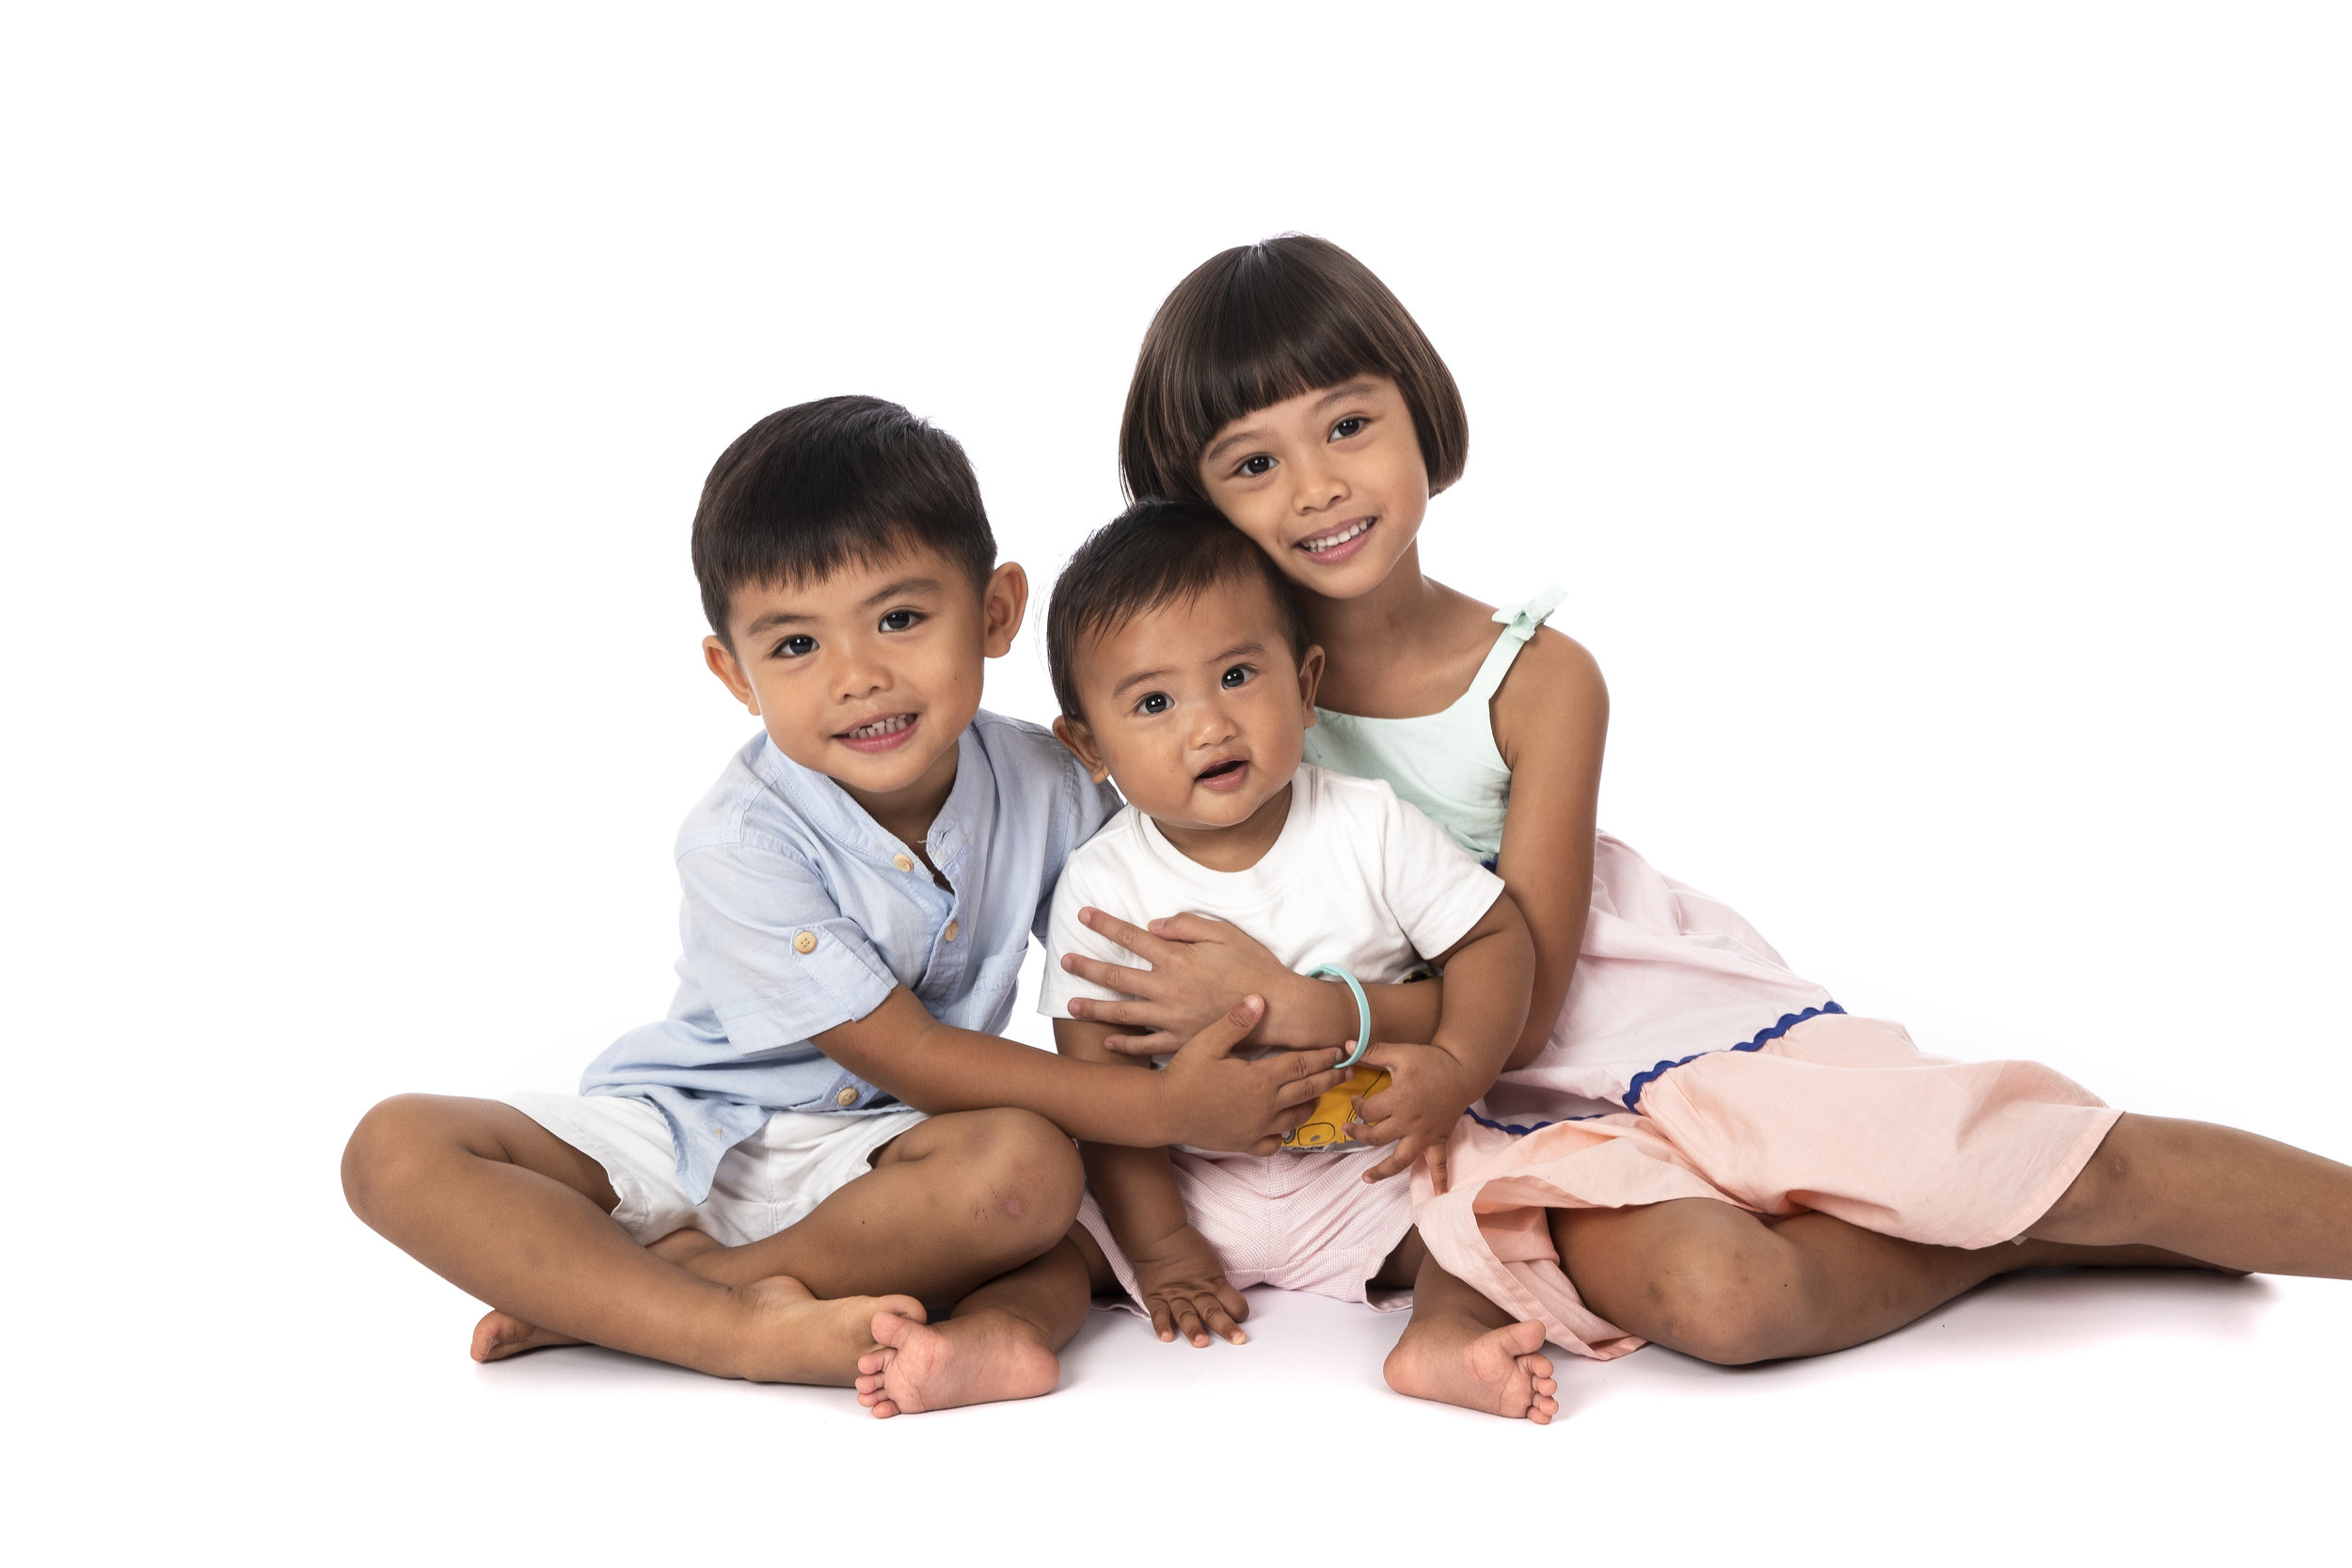 Singapore Family Photo Shoot Studio Vision Photography Daniel Parker